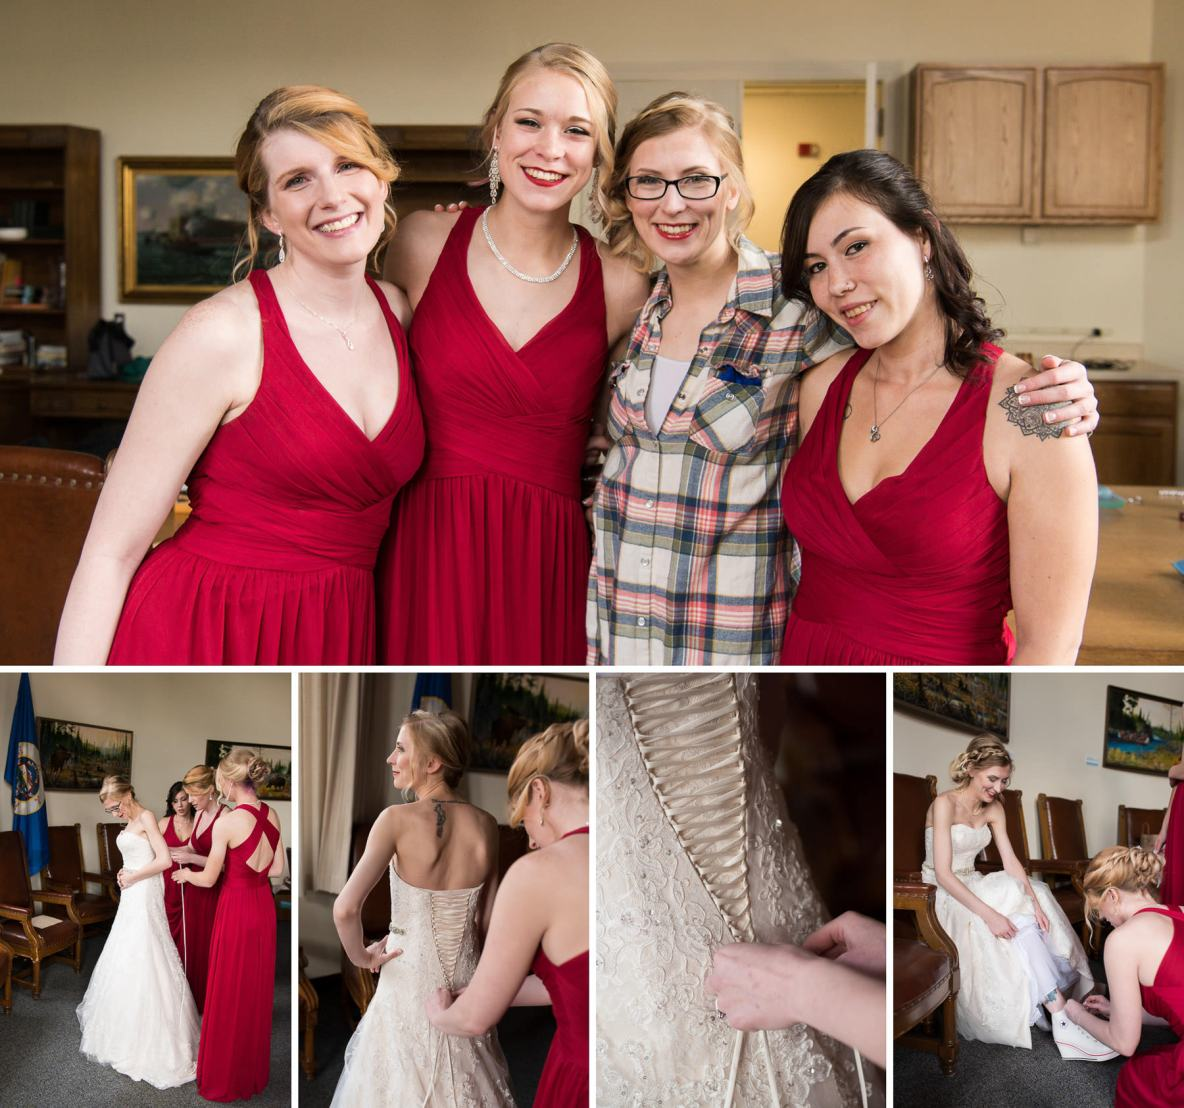 Maddie and the bridesmaids.